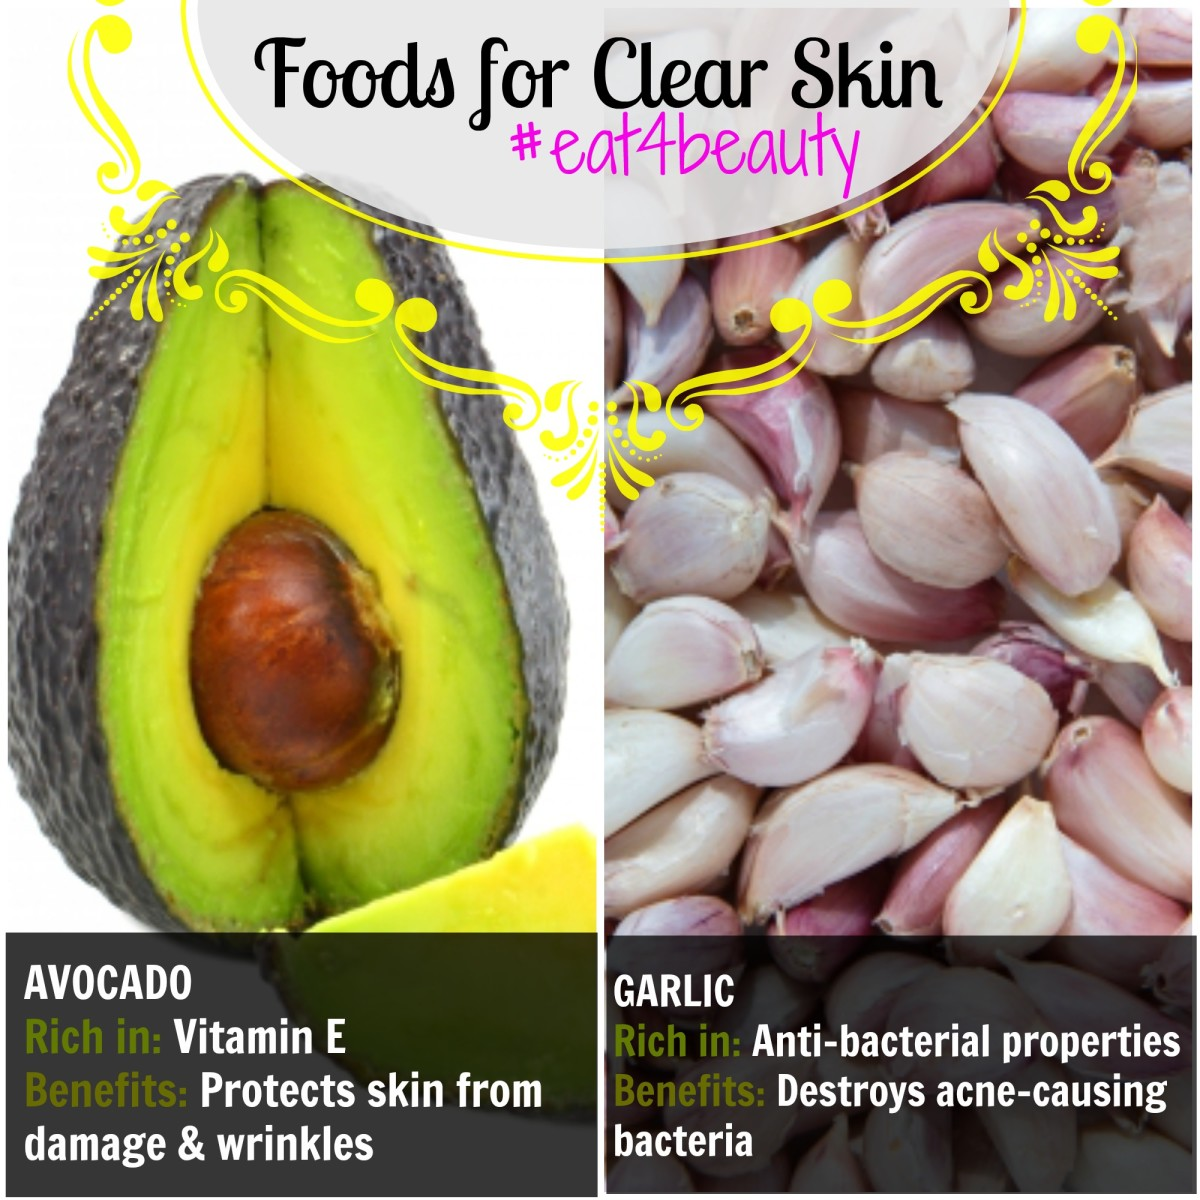 What foods should you eat for clearer looking skin? Avocado and Garlic contain important vitamins and nutrients that can clear complexion!